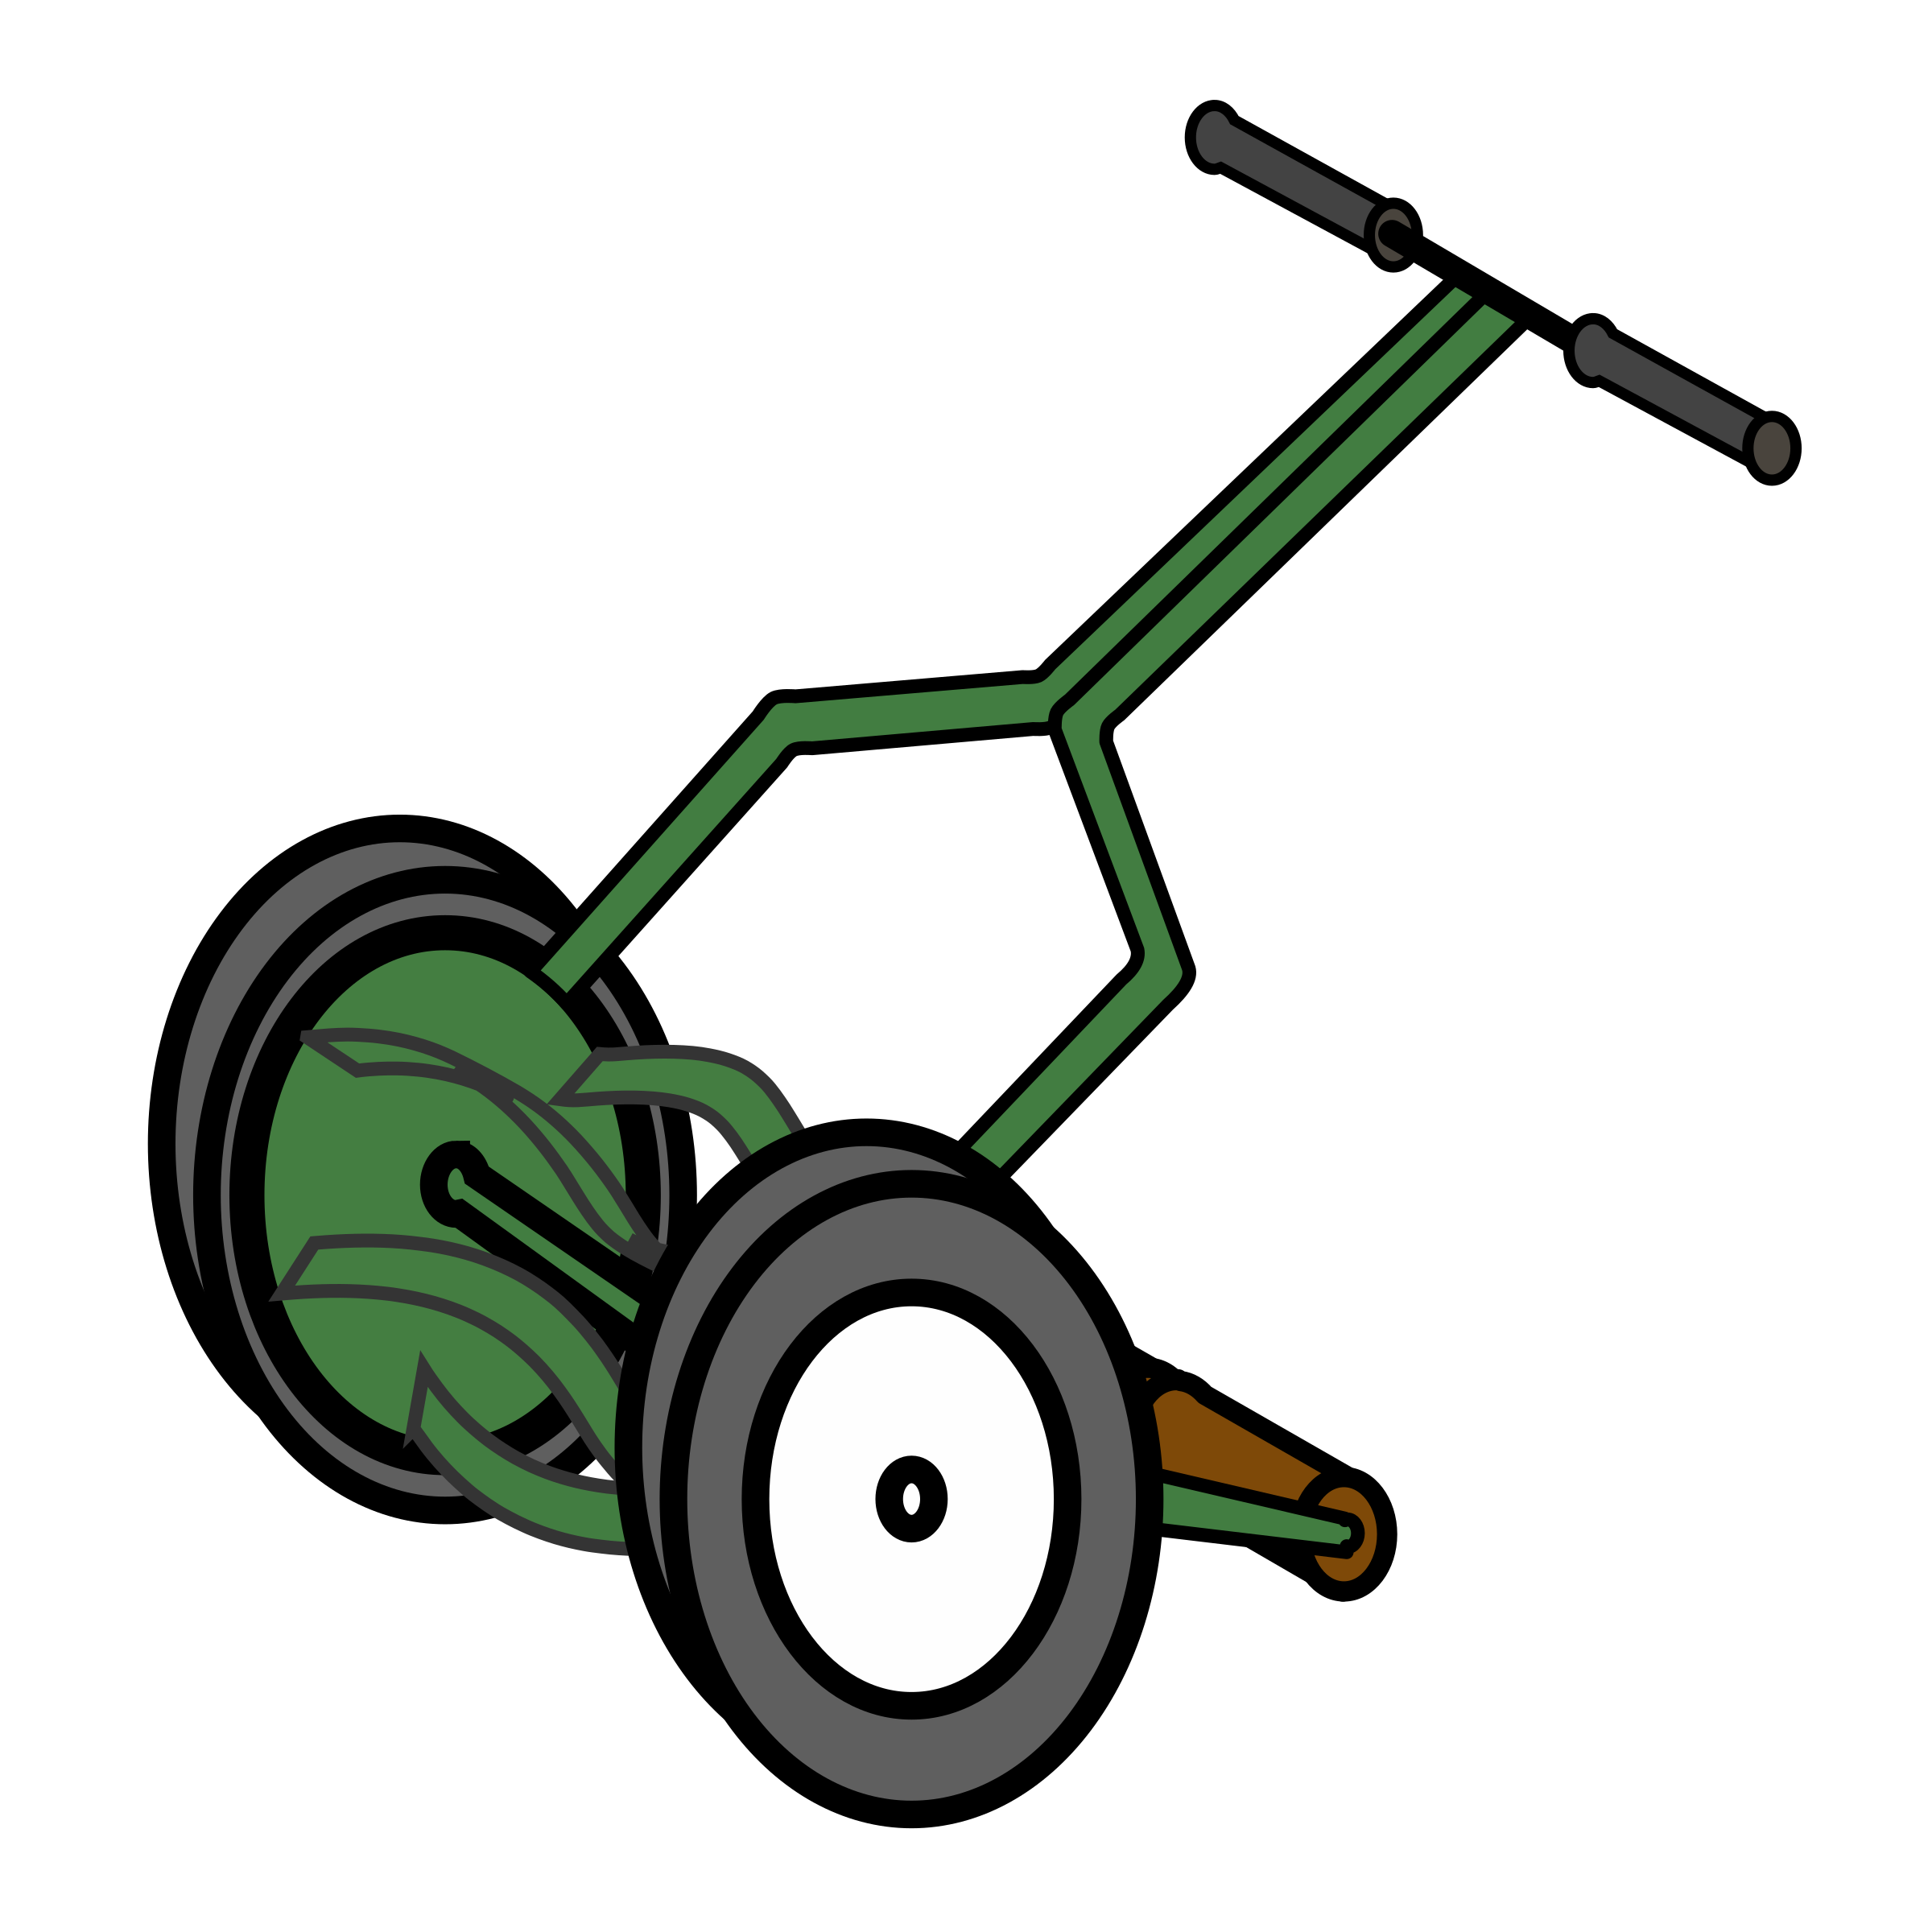 Cartoon Push Reel Lawn Mower by bnielsen